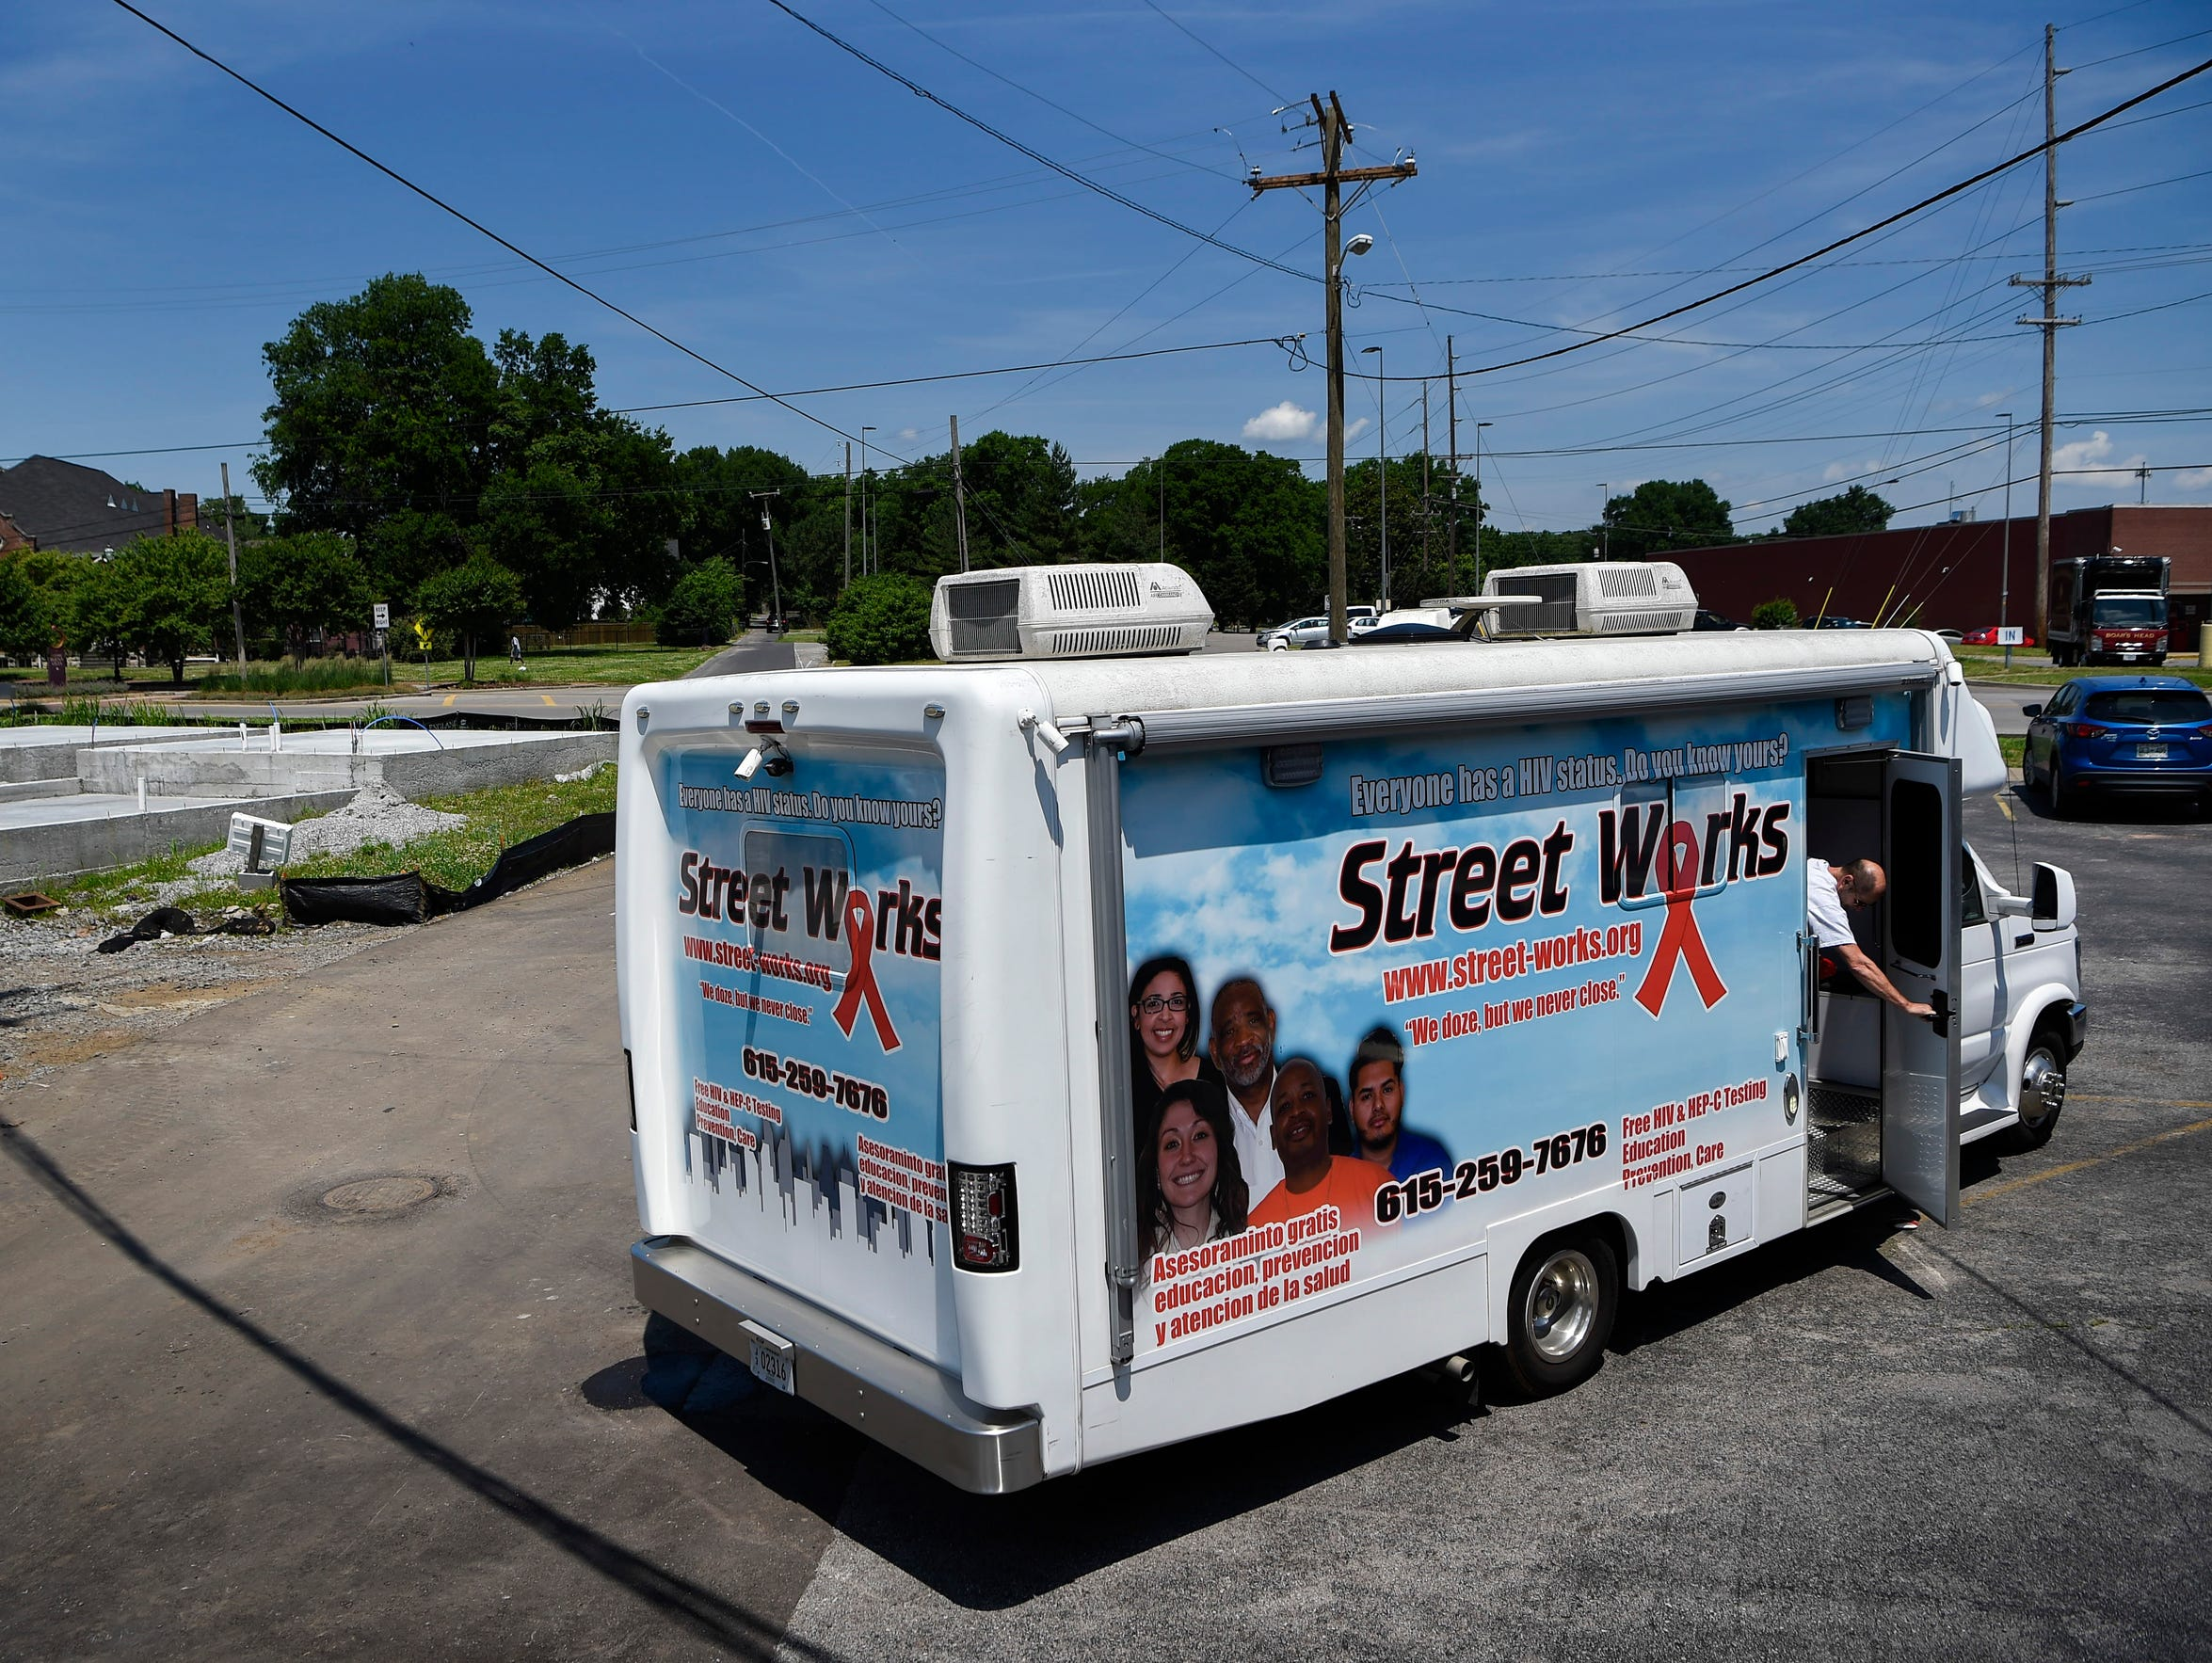 The StreetWorks RV, photographed on May 25, is the